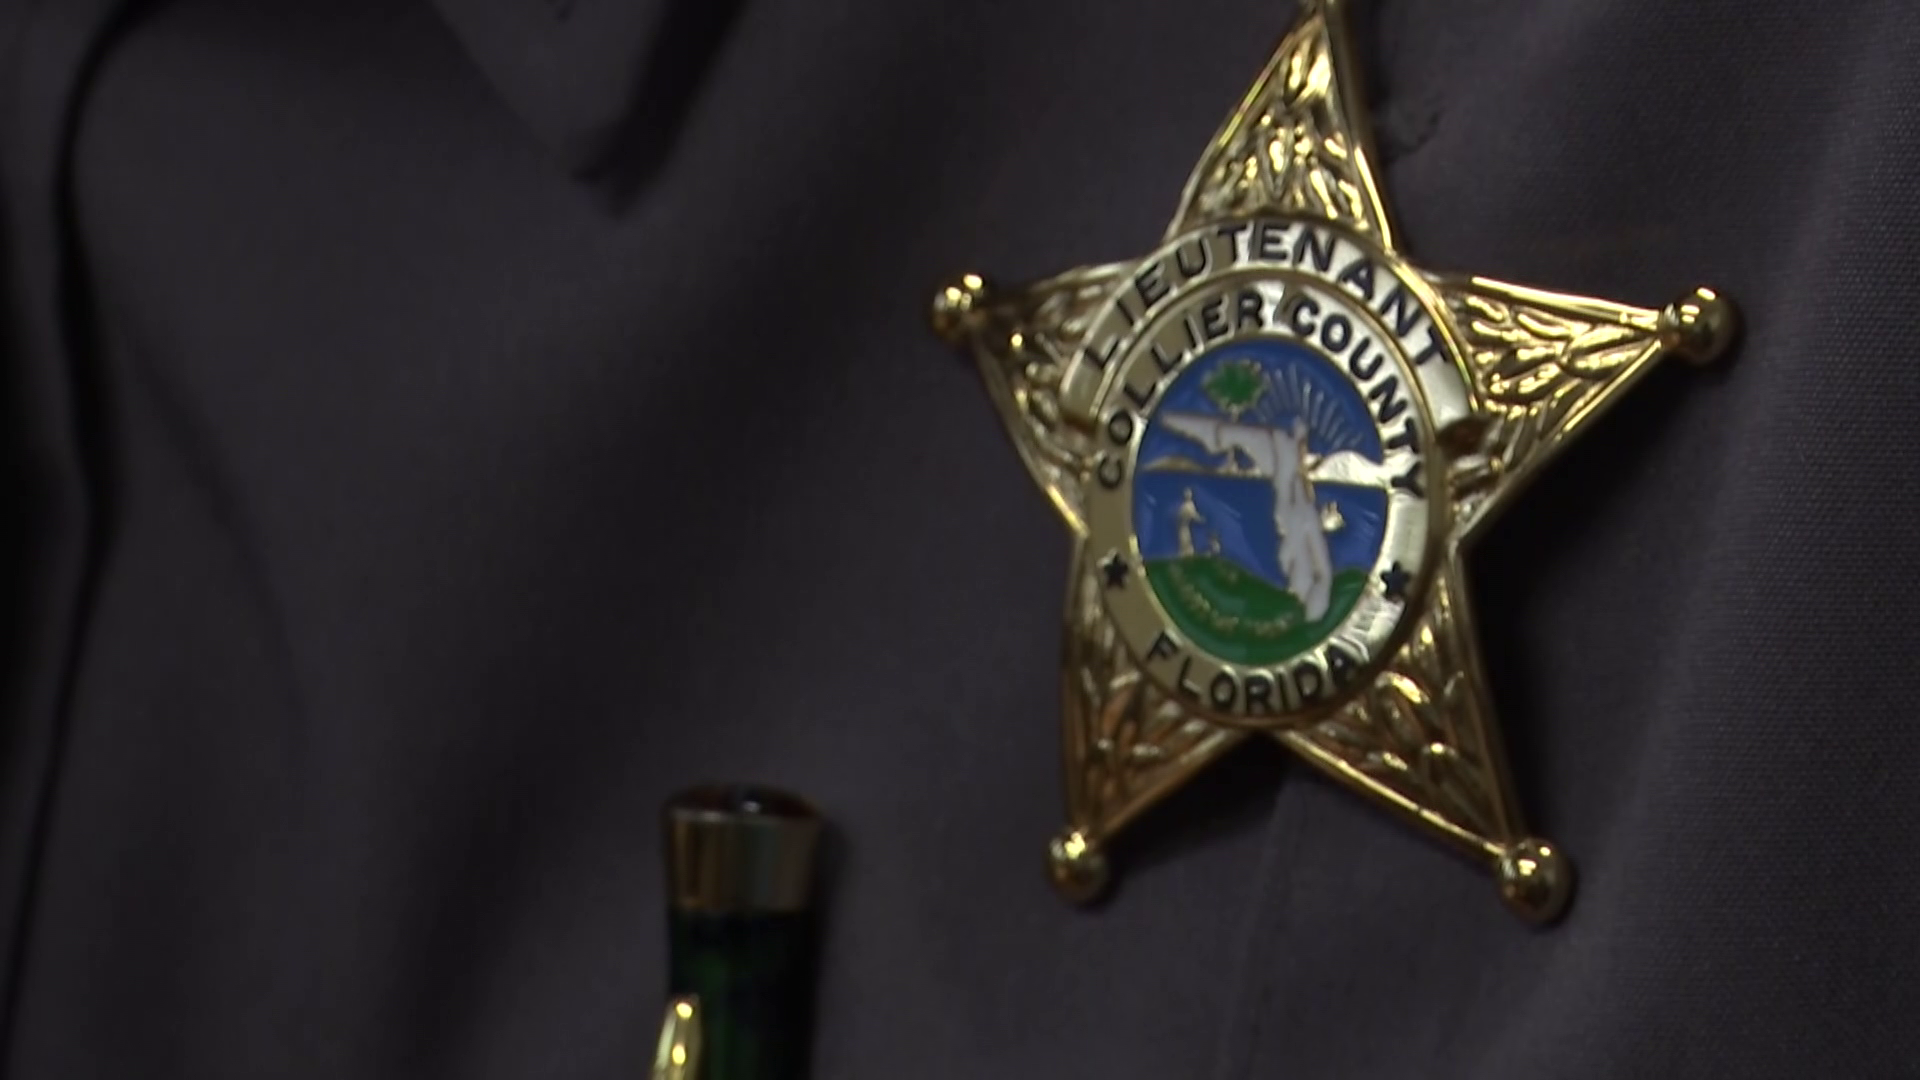 Collier County Sheriff's Office badge (WINK News)